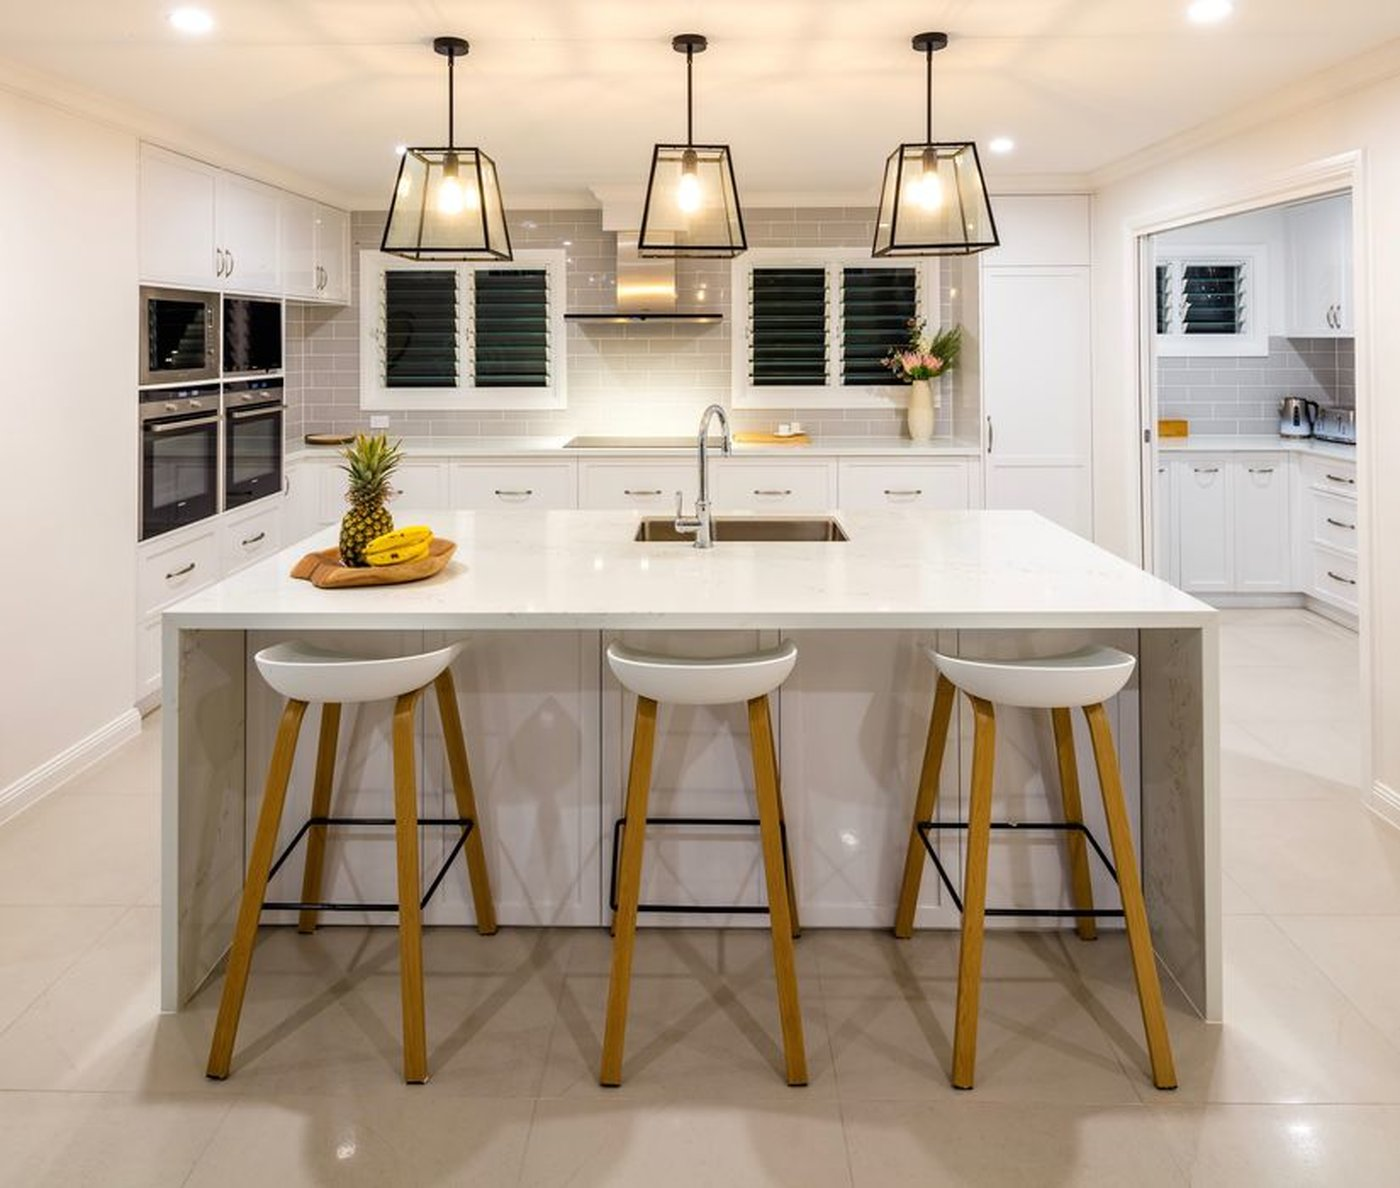 New white kitchen with island bench, three stools and three hanging pendant lights